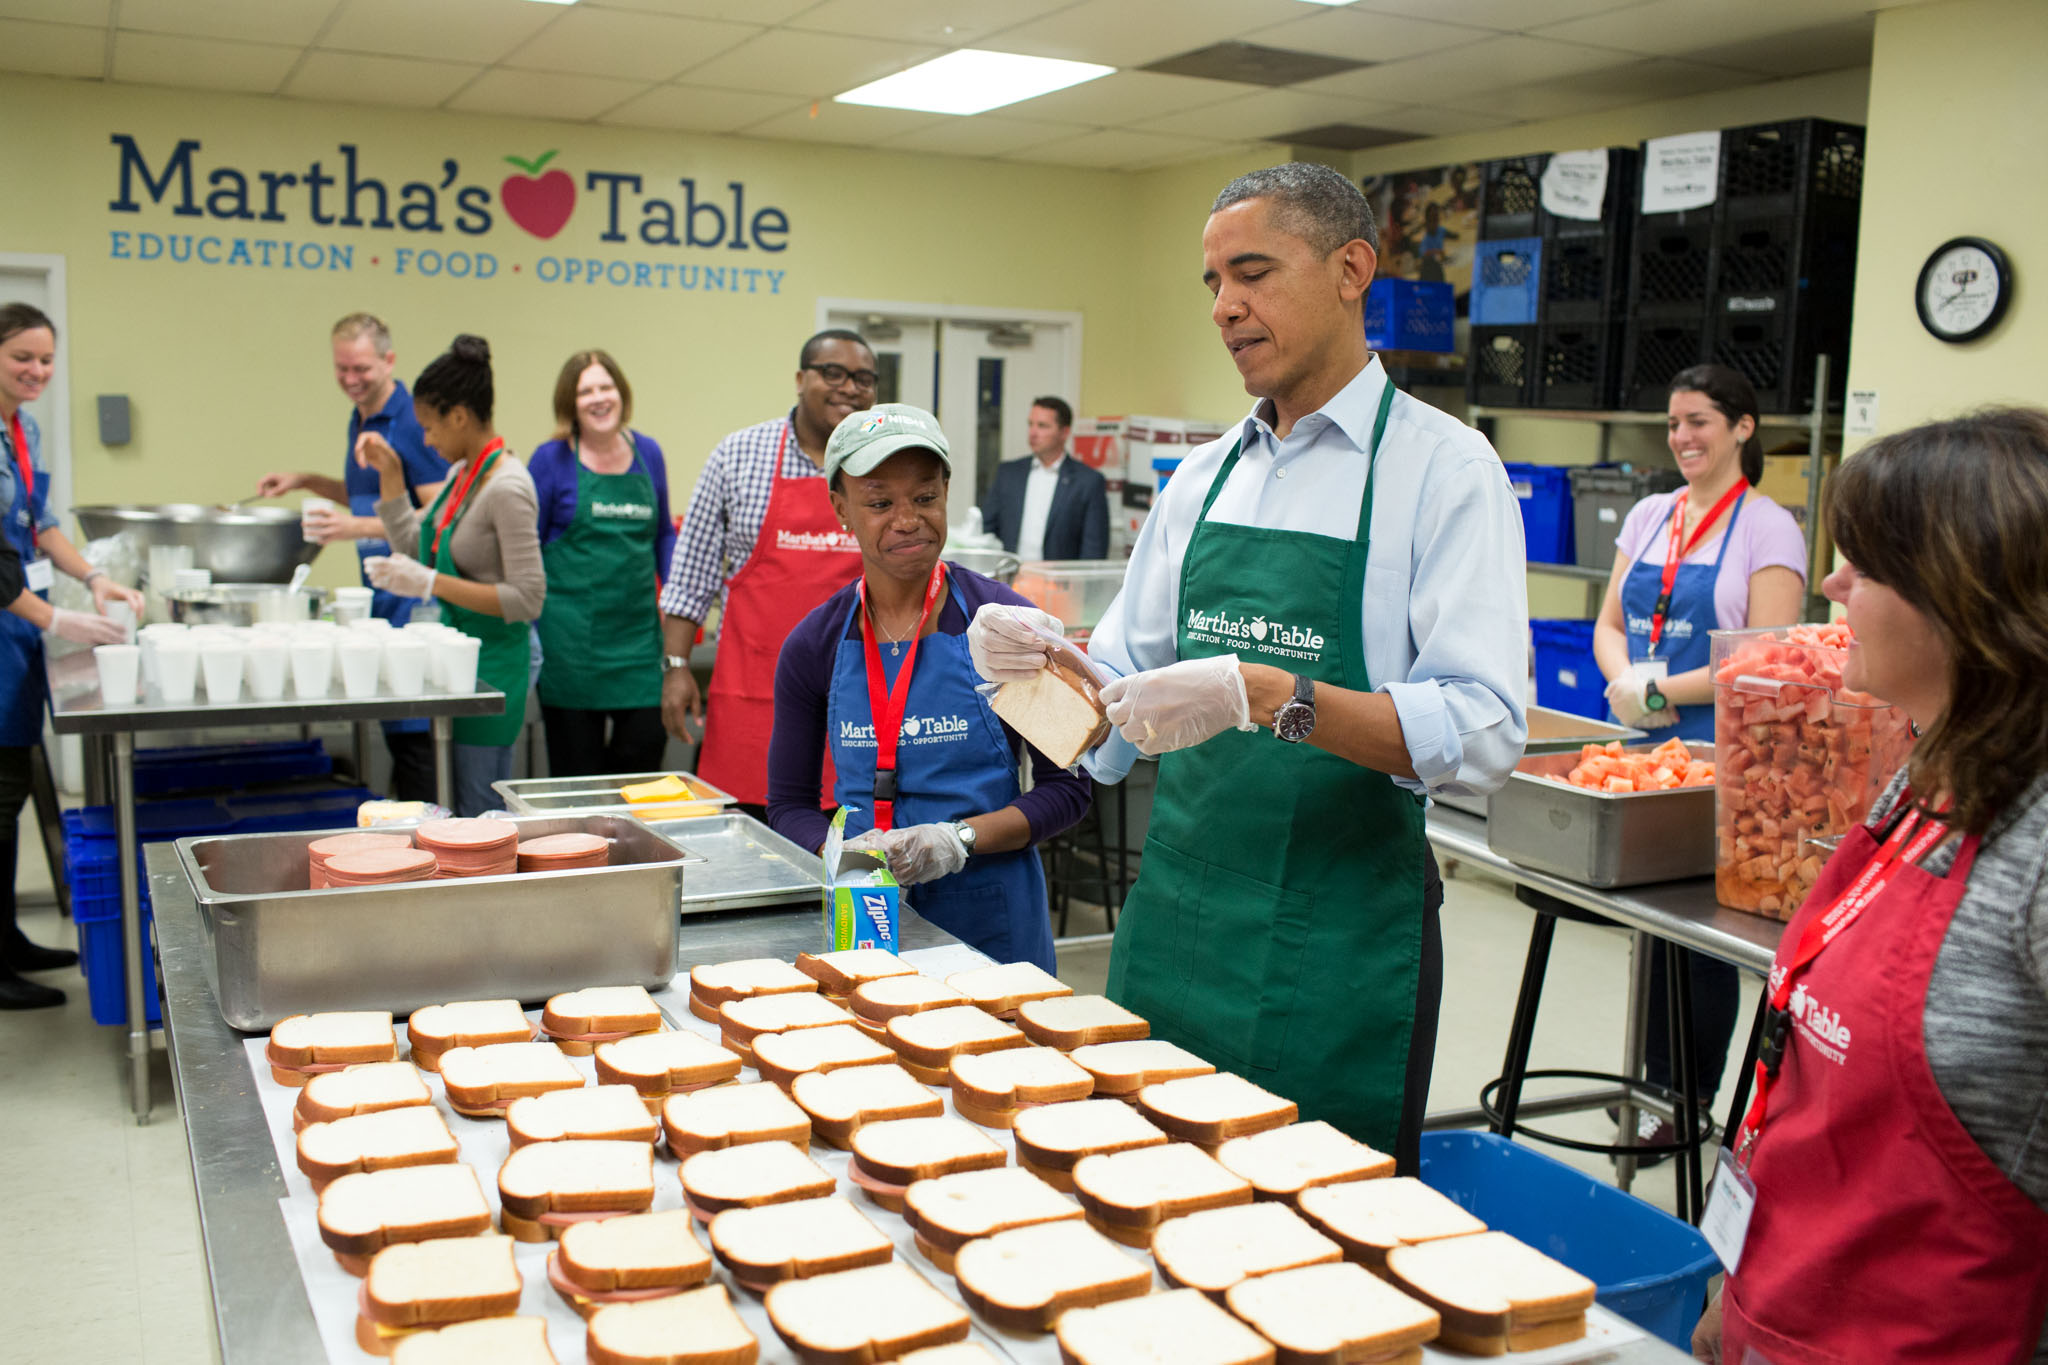 President Obama making sandwiches at Martha's Table